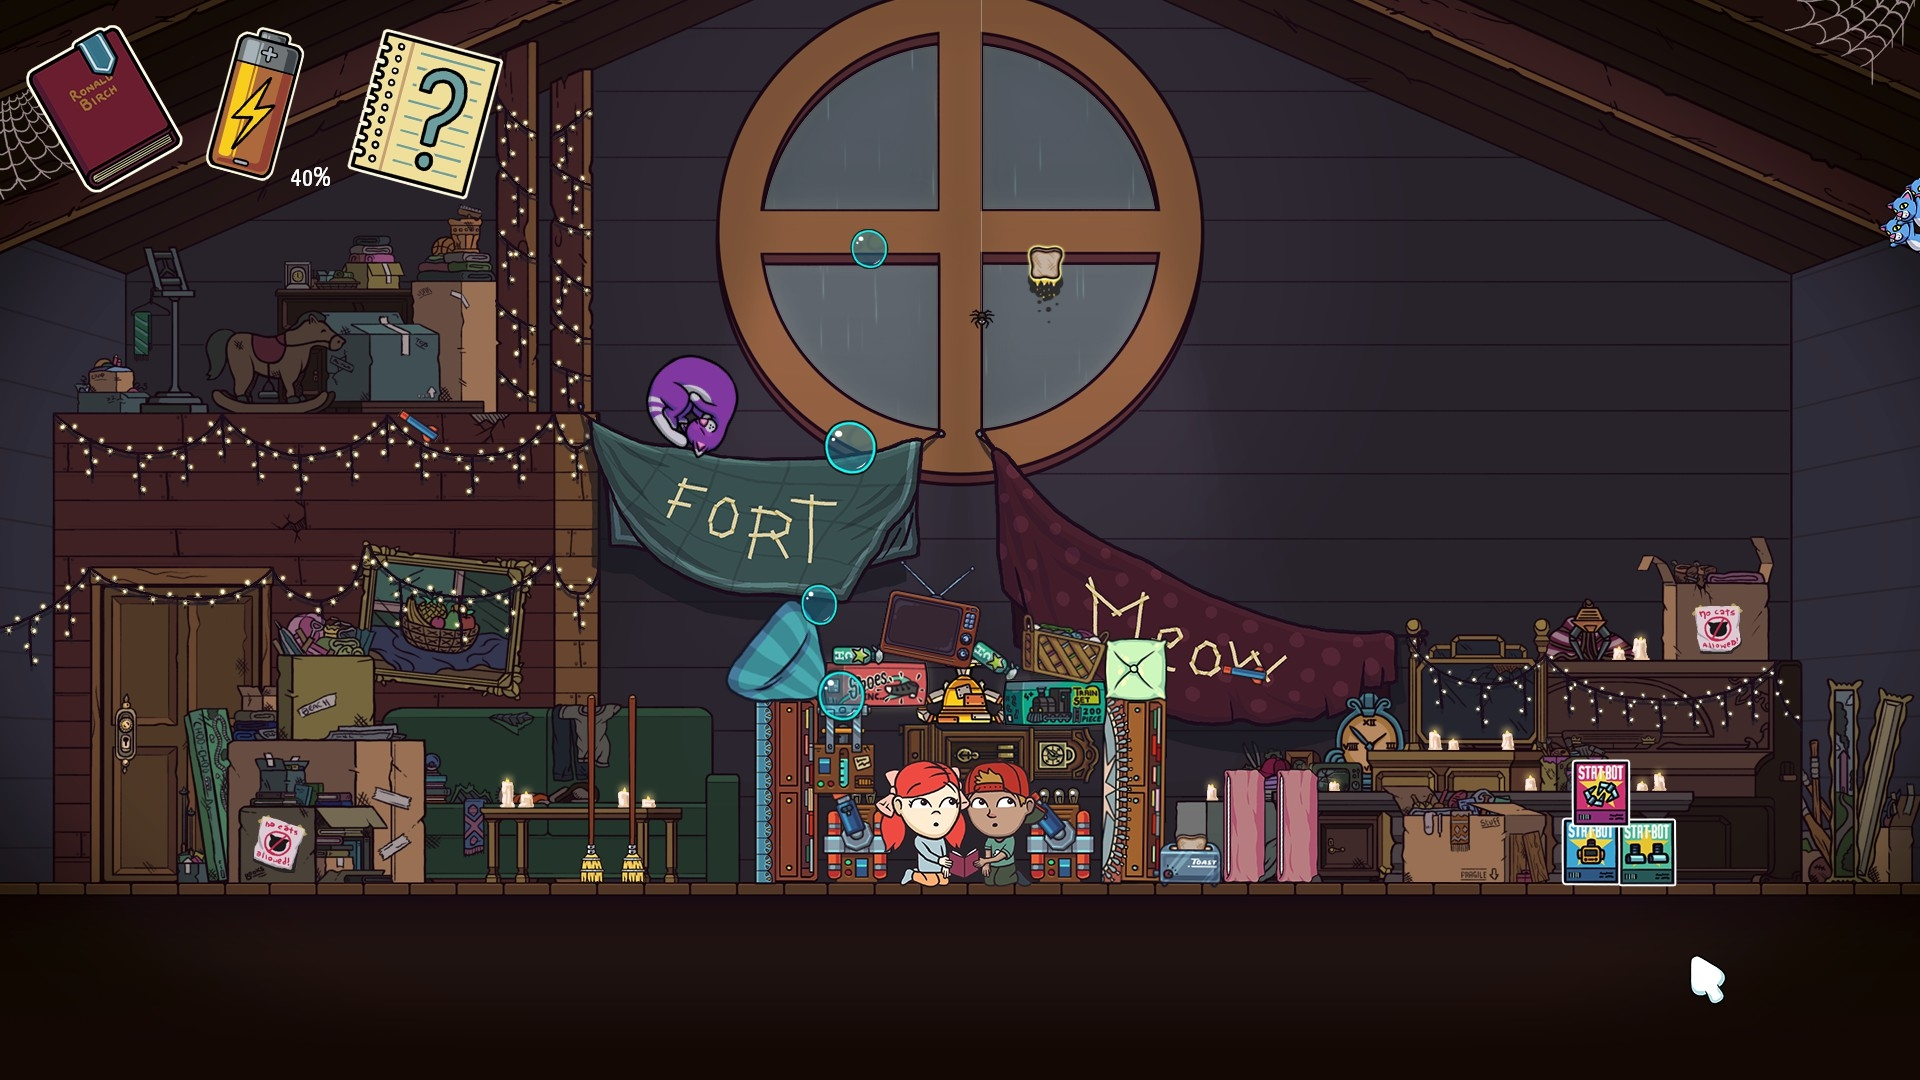 Fort Meow Recensione